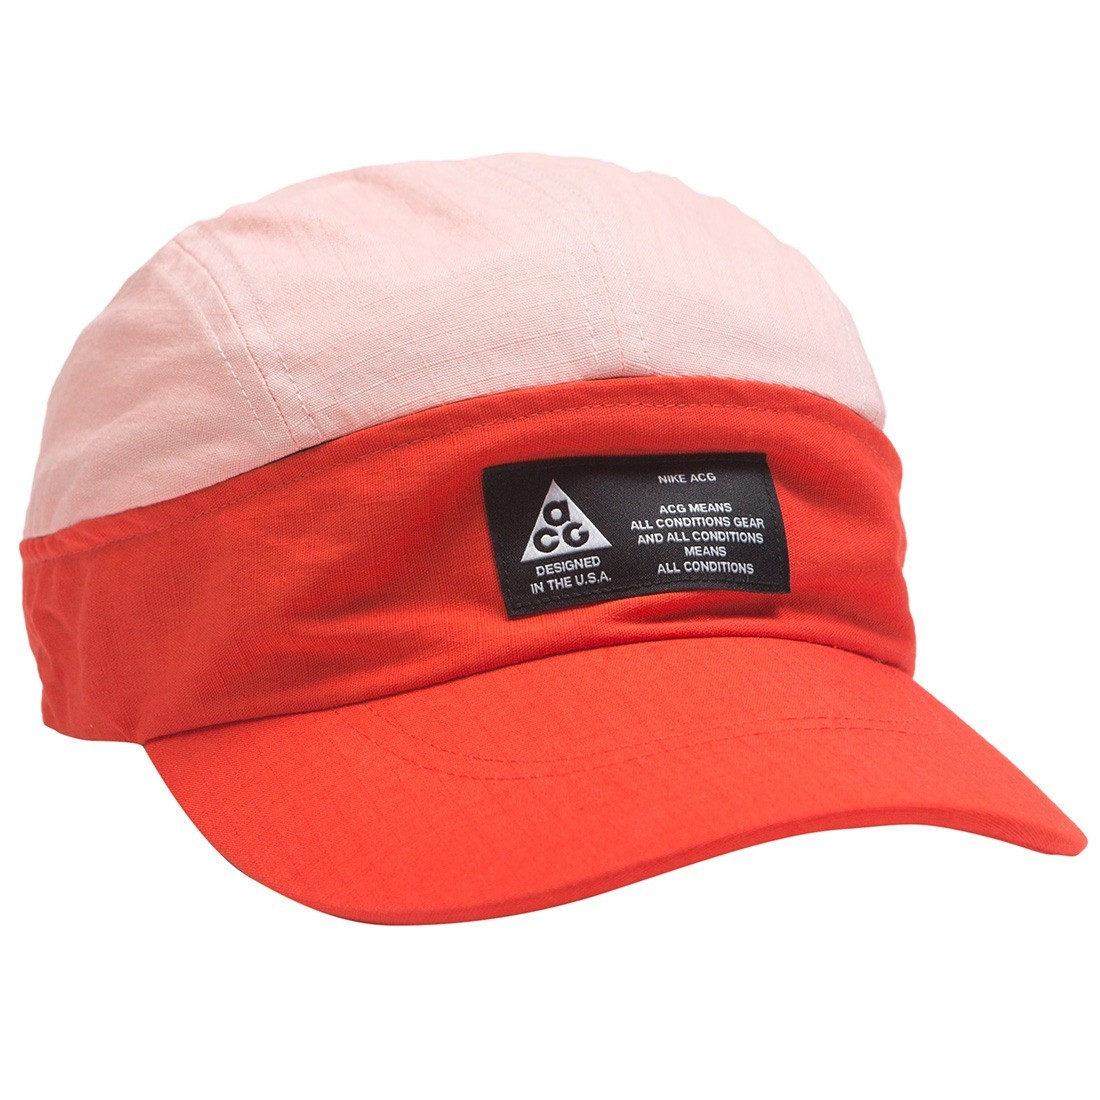 Nike Men Nrg Acg Tailwind Visor Cap (habanero red / bleached coral)